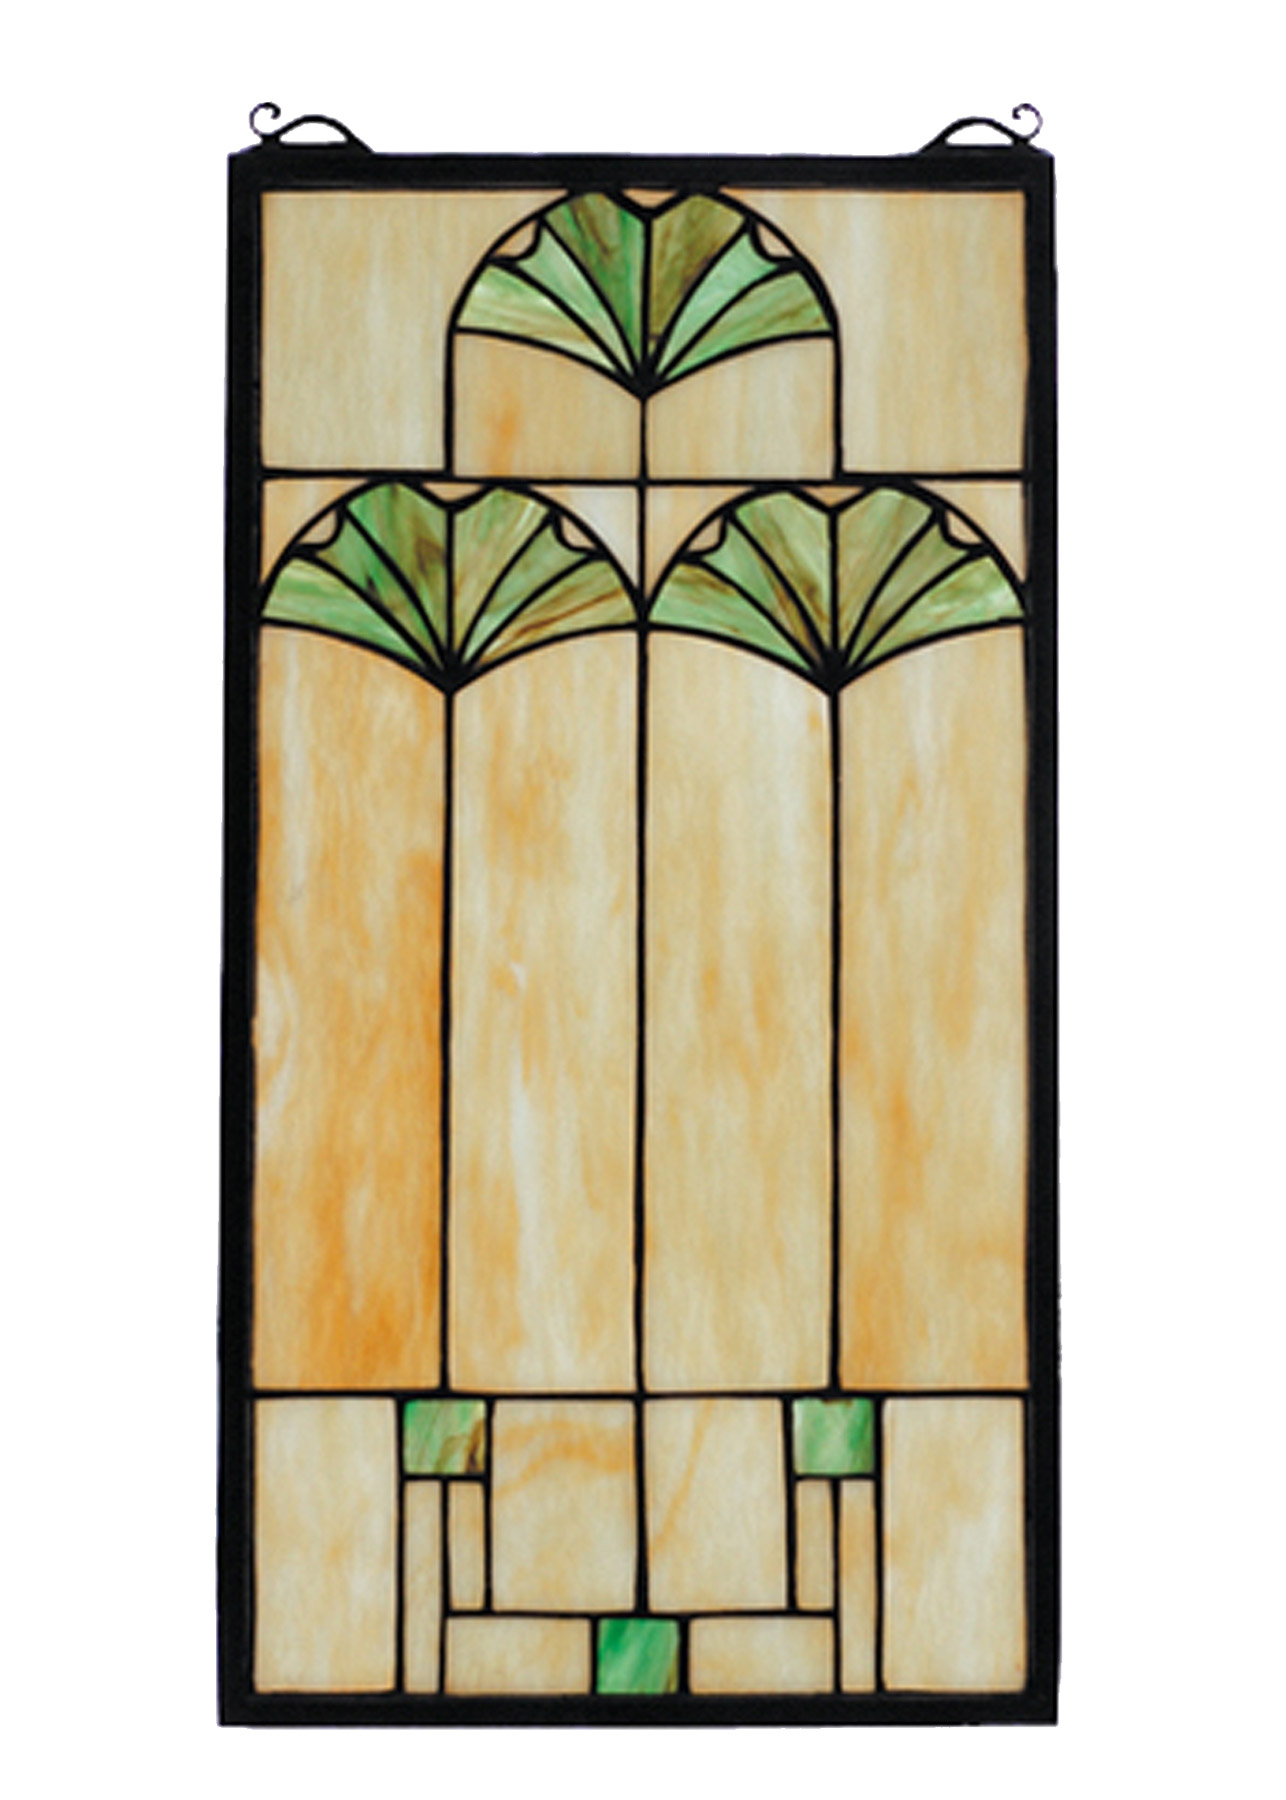 Meyda 67787 Tiffany Arts & Crafts Ginkgo Stained Glass Window